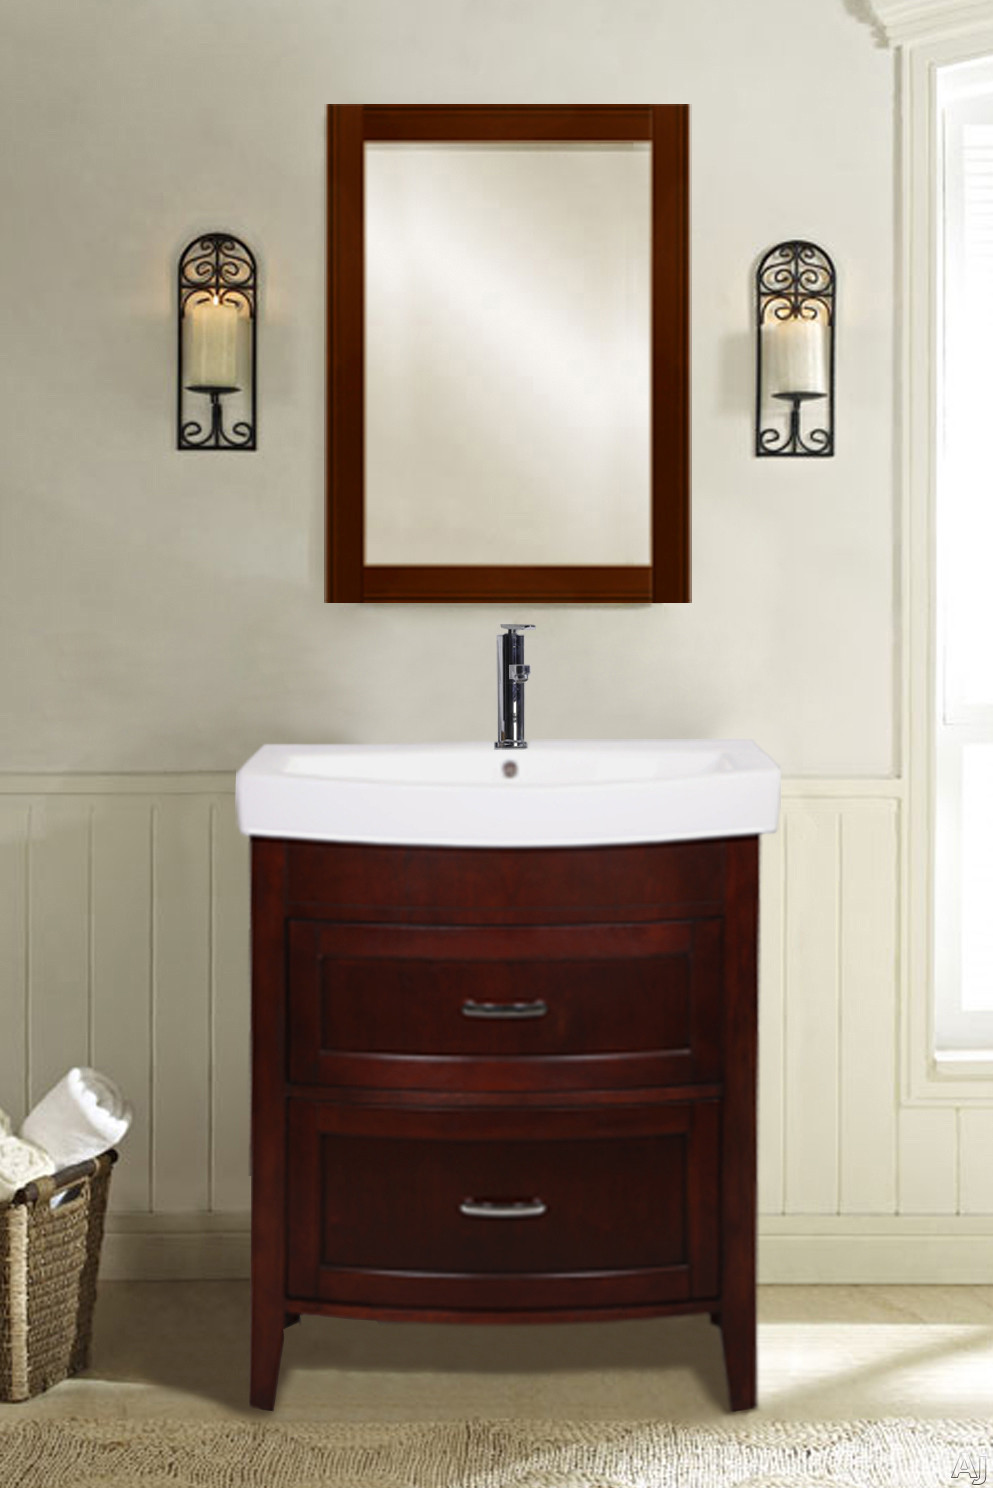 Empire Industries Arch Collection A2102DC 20 Inch Freestanding Vanity with 2 Drawers for Your Royale Collection Ceramic Drop In Bathroom Sink Dark Cherry